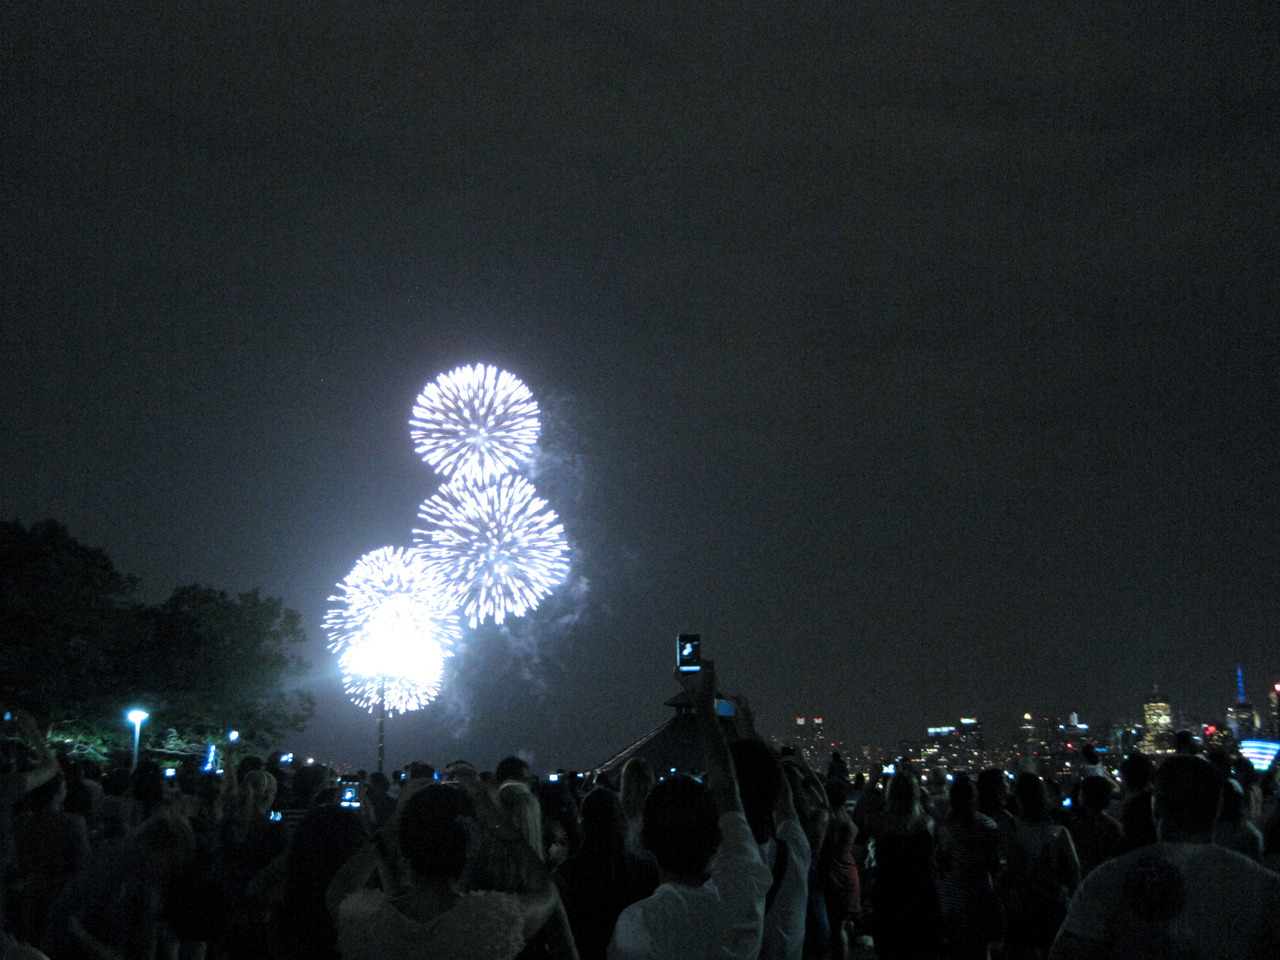 NYC fireworks (as seen from Hoboken, NJ)